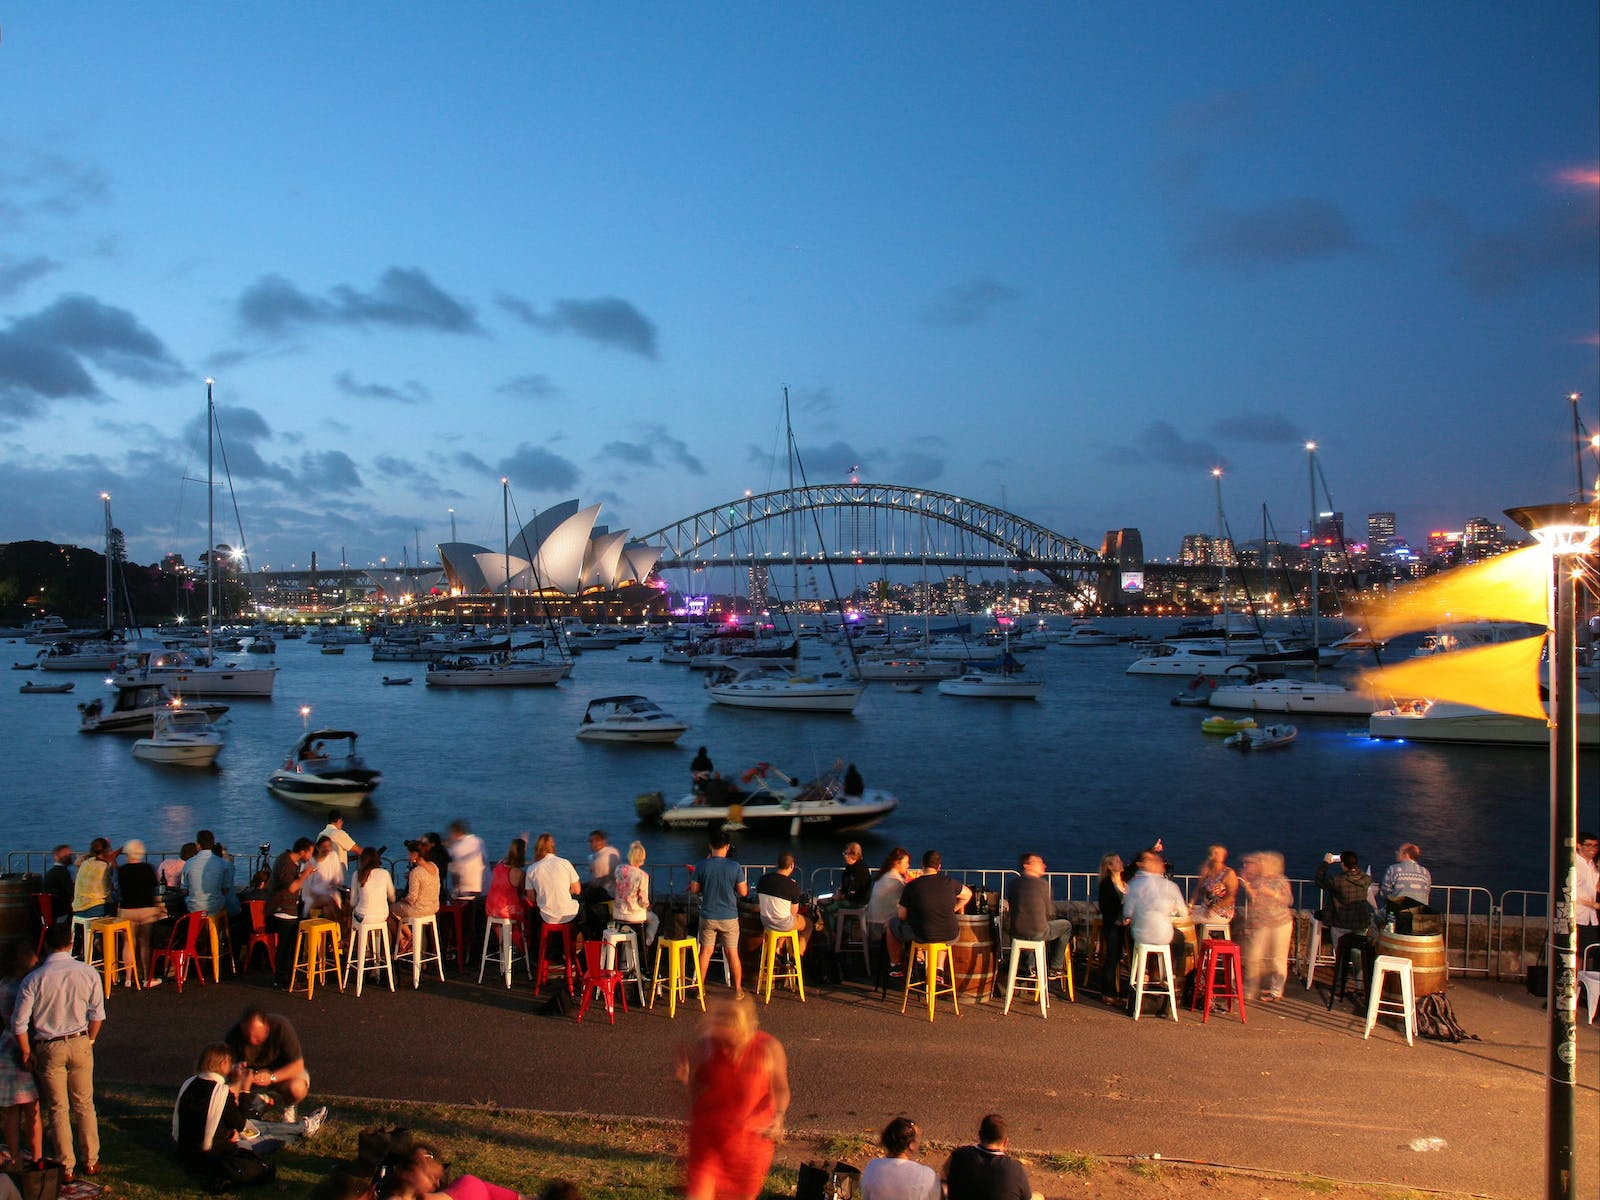 Image for The Point - New Year's Eve at the Royal Botanic Garden Sydney